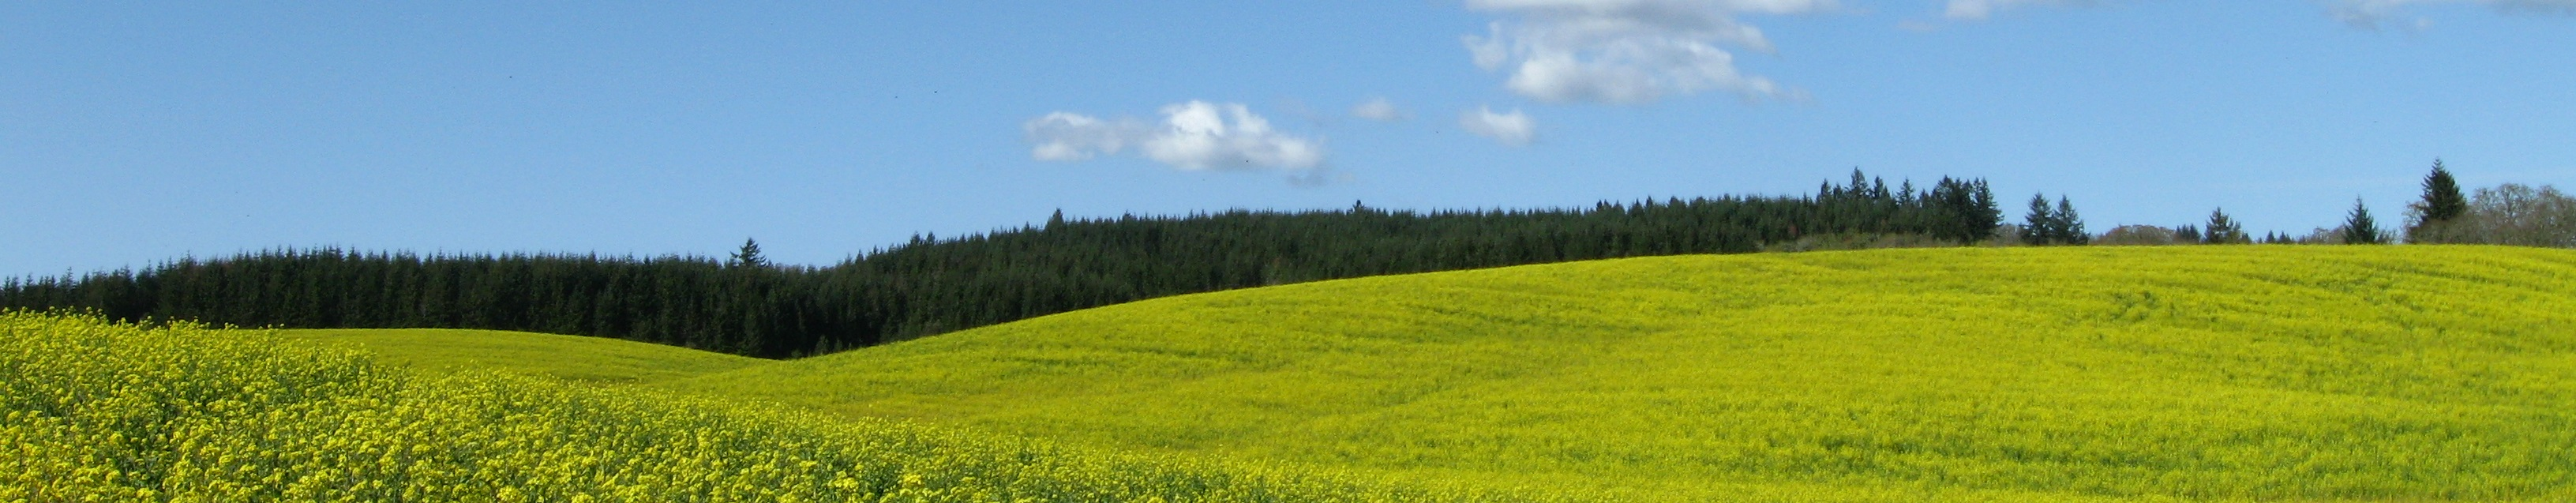 Yellow field west of Salem 1.JPG